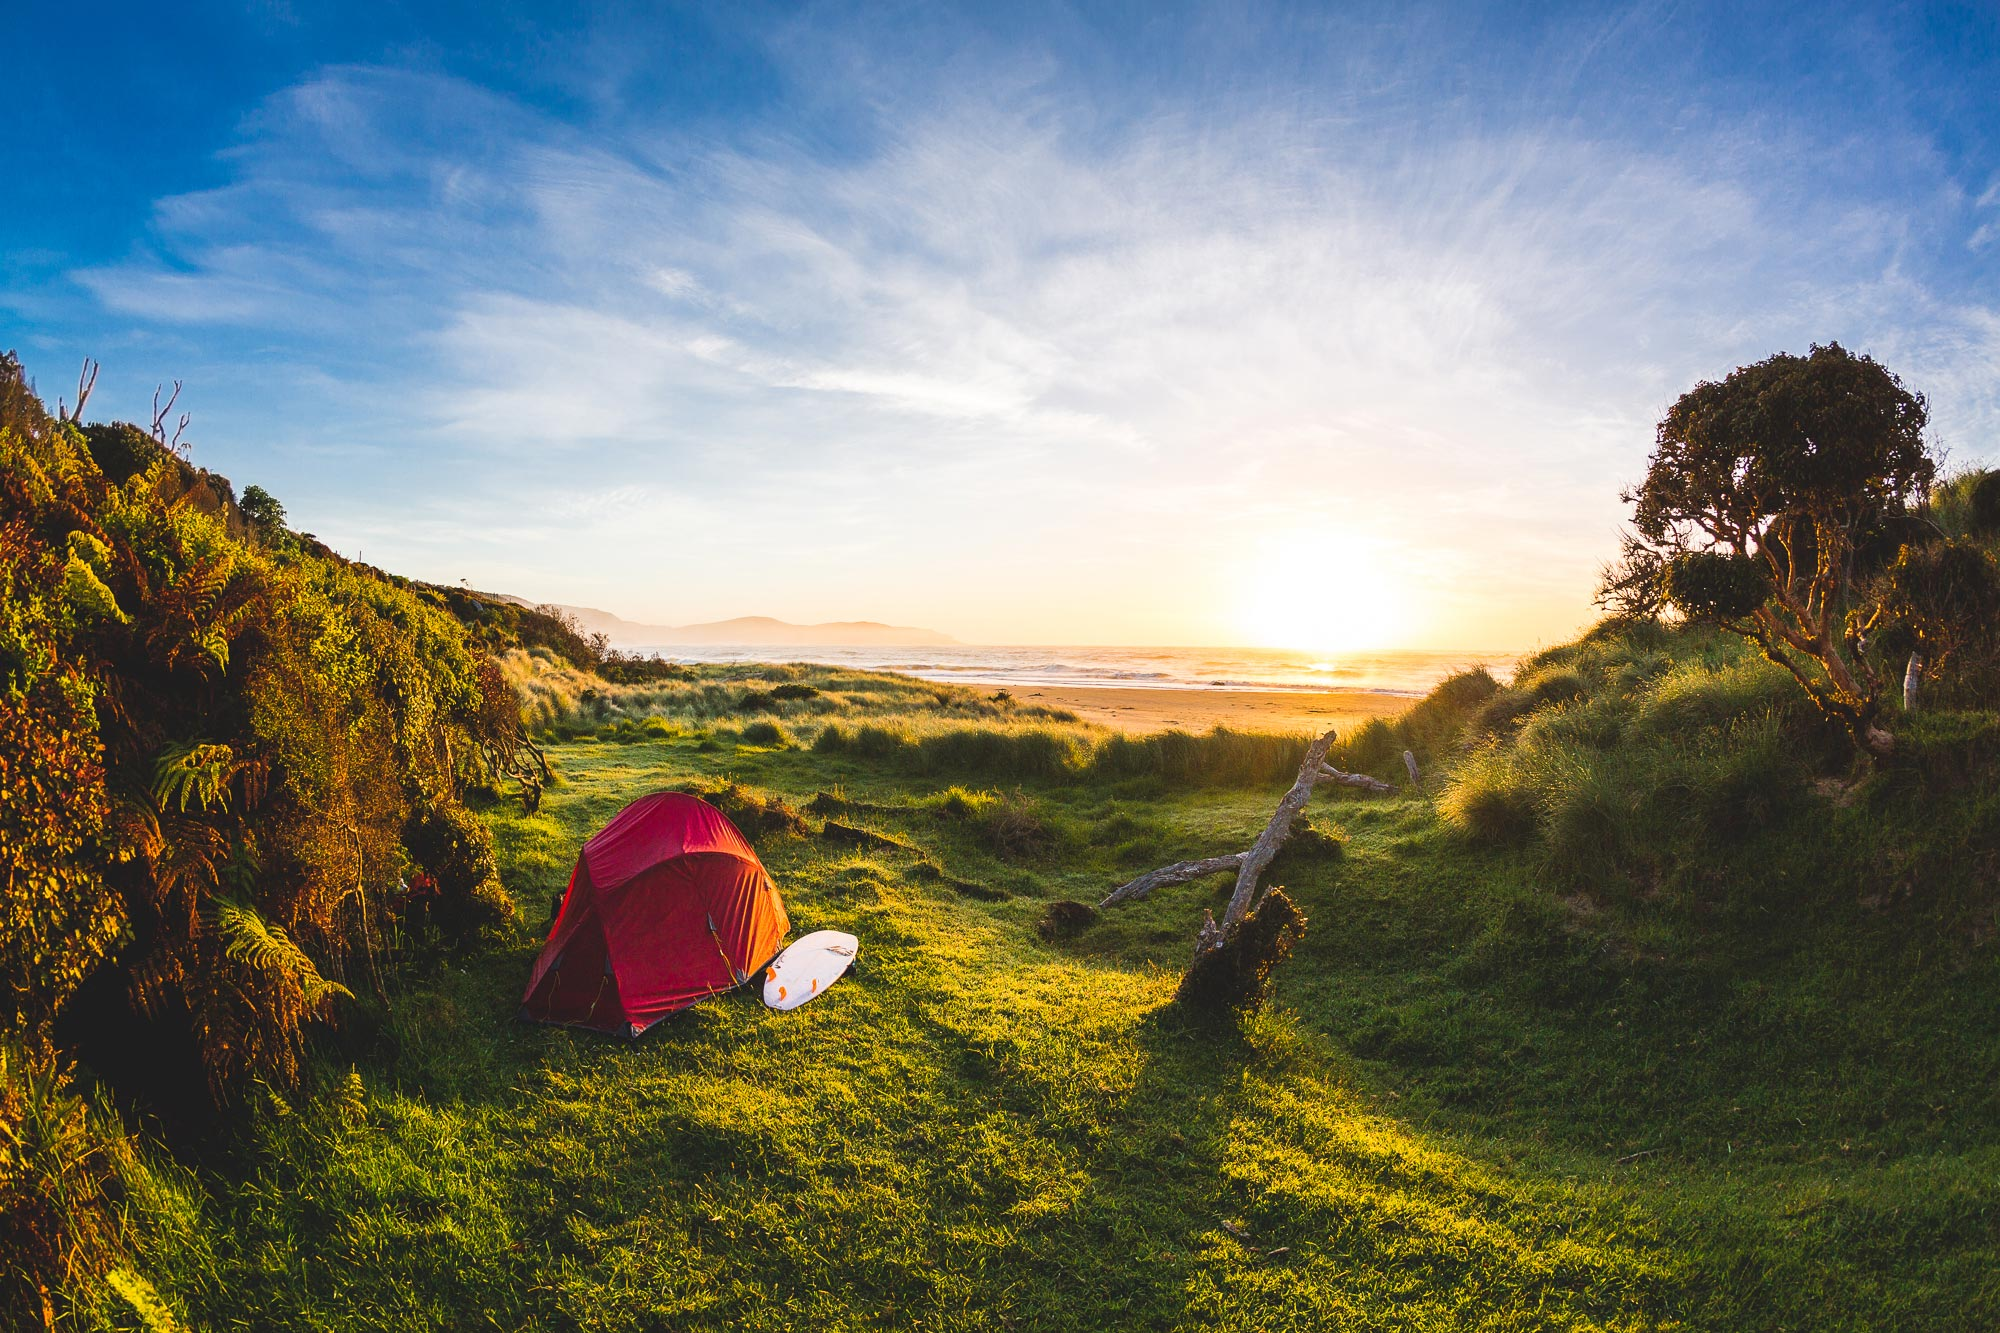 Camping at the beach in New Zealand